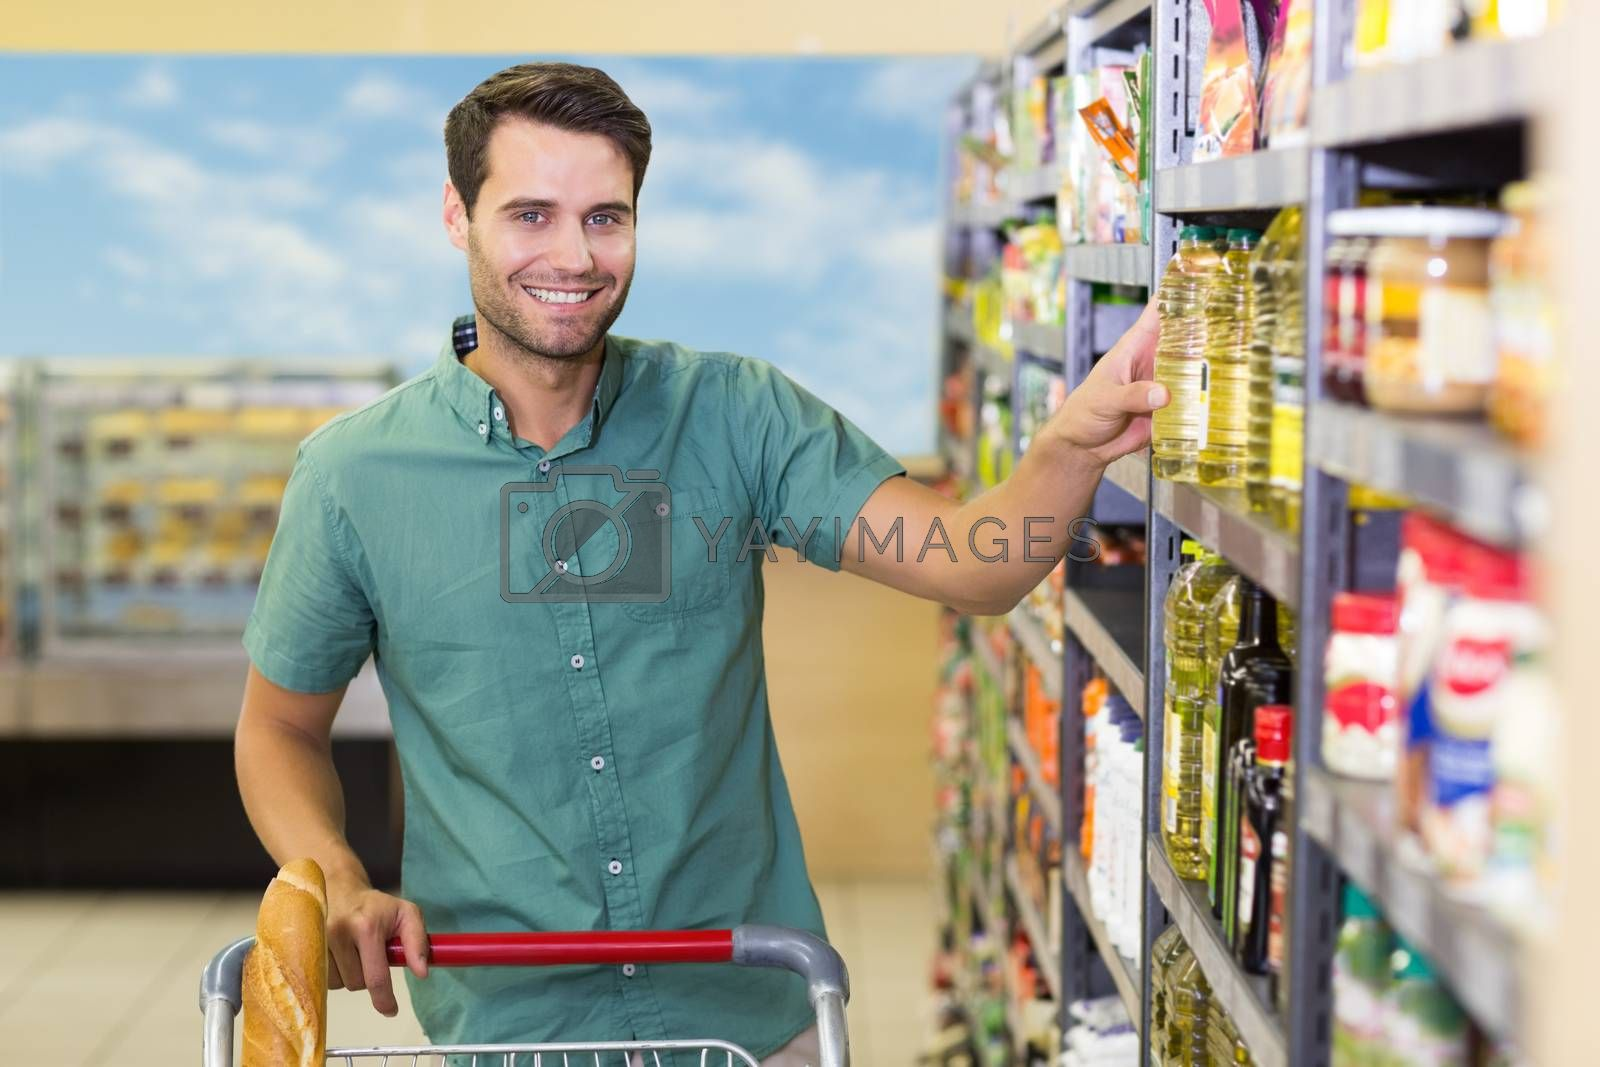 Royalty free image of Portrait of smiling man taking oil in the shelf of aisle  by Wavebreakmedia